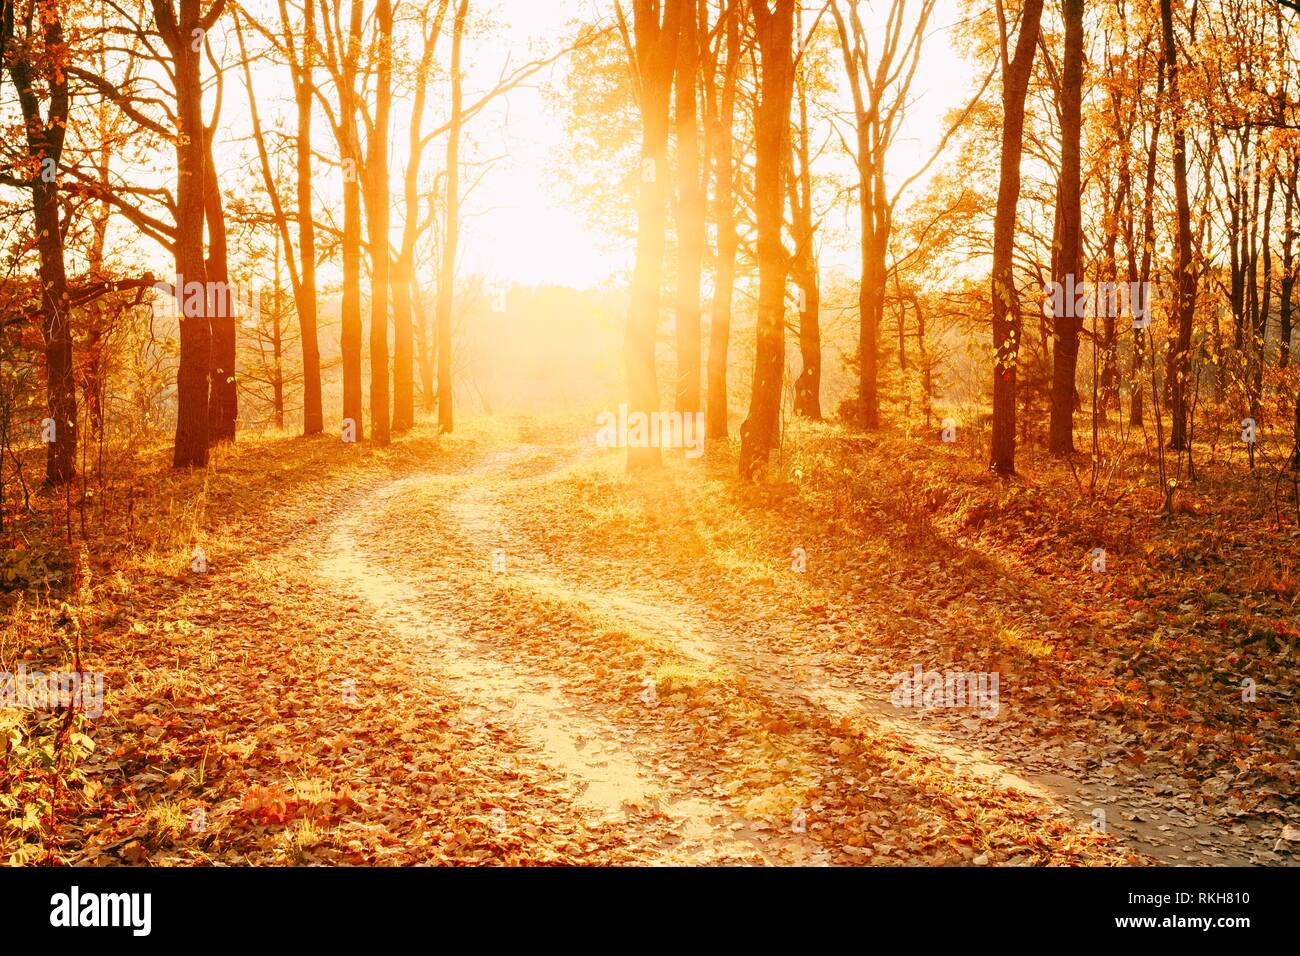 Winding Countryside Road Path Walkway Through Autumn Forest. Sunset Sunrise. Nobody. Road Turns To Rising Sun. - Stock Image